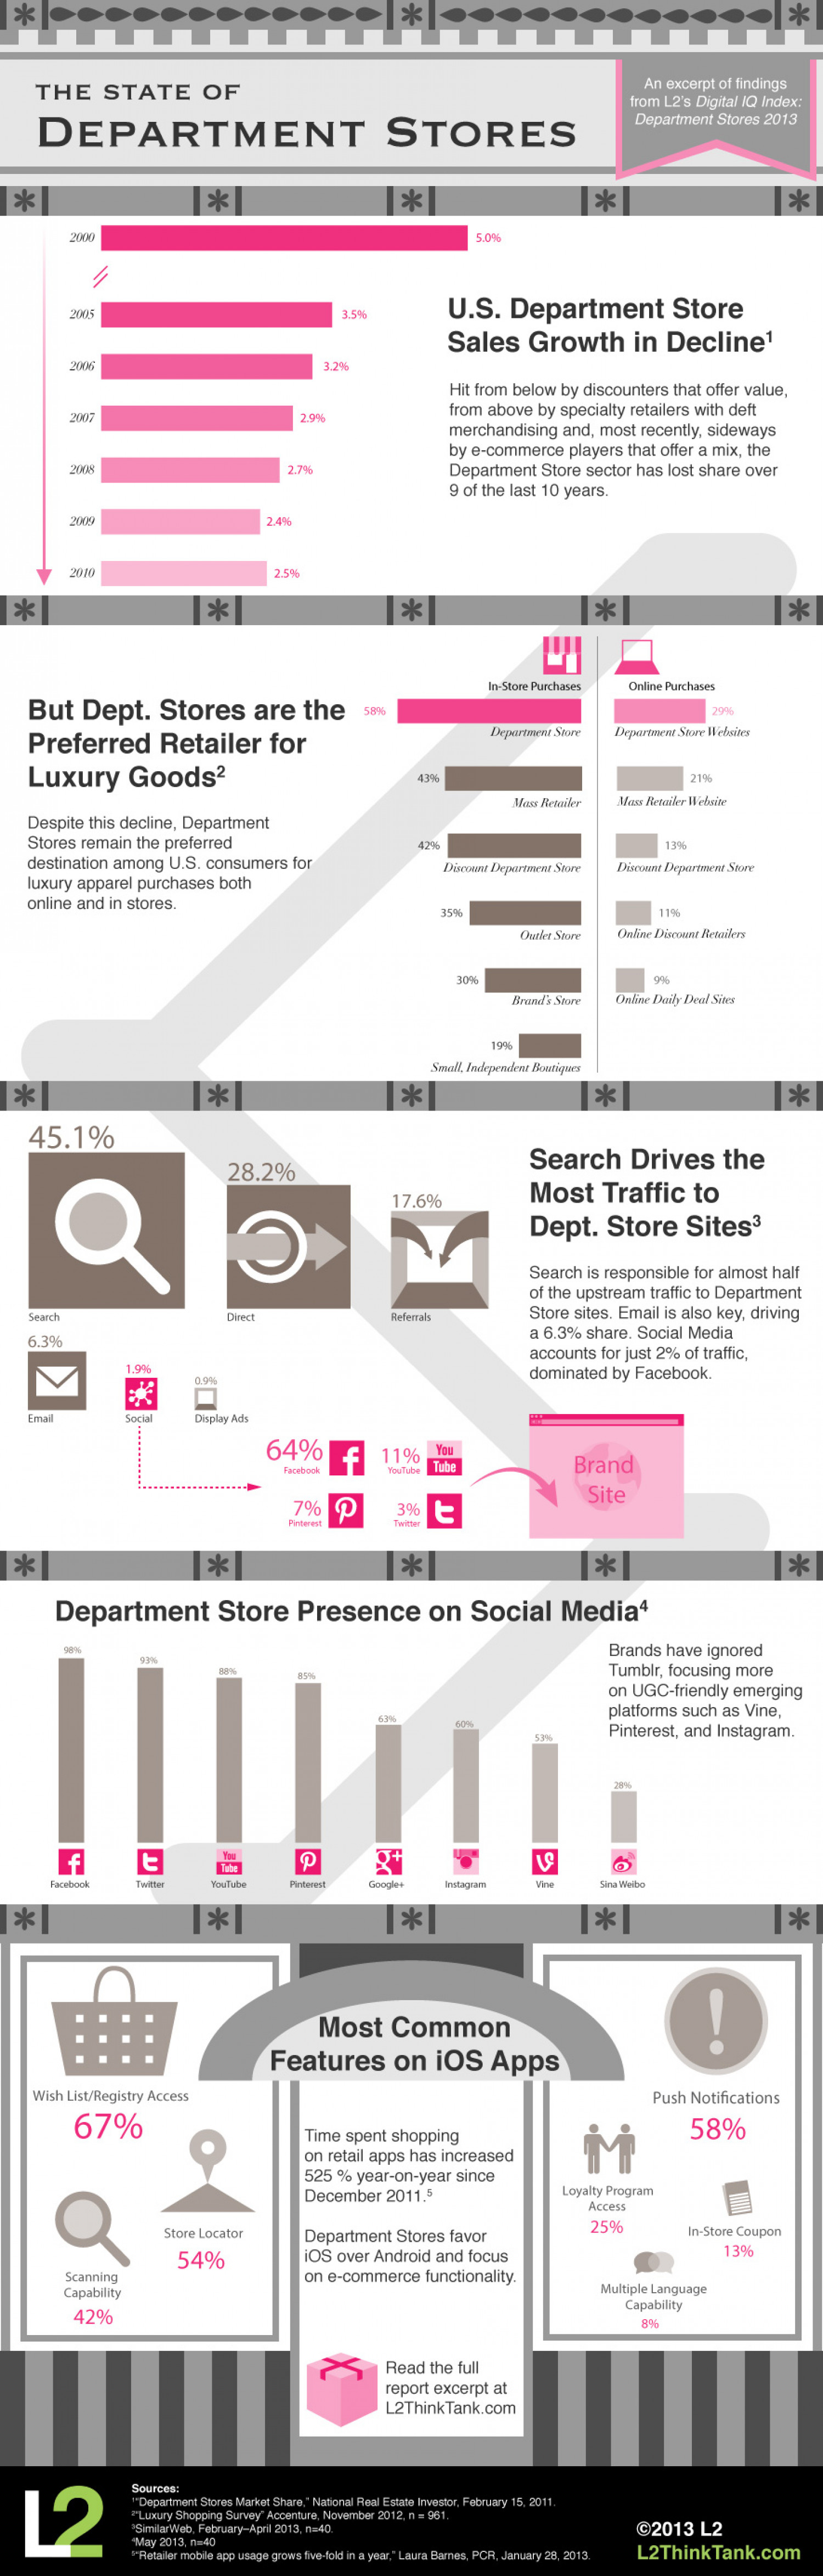 The State of Department Stores Infographic